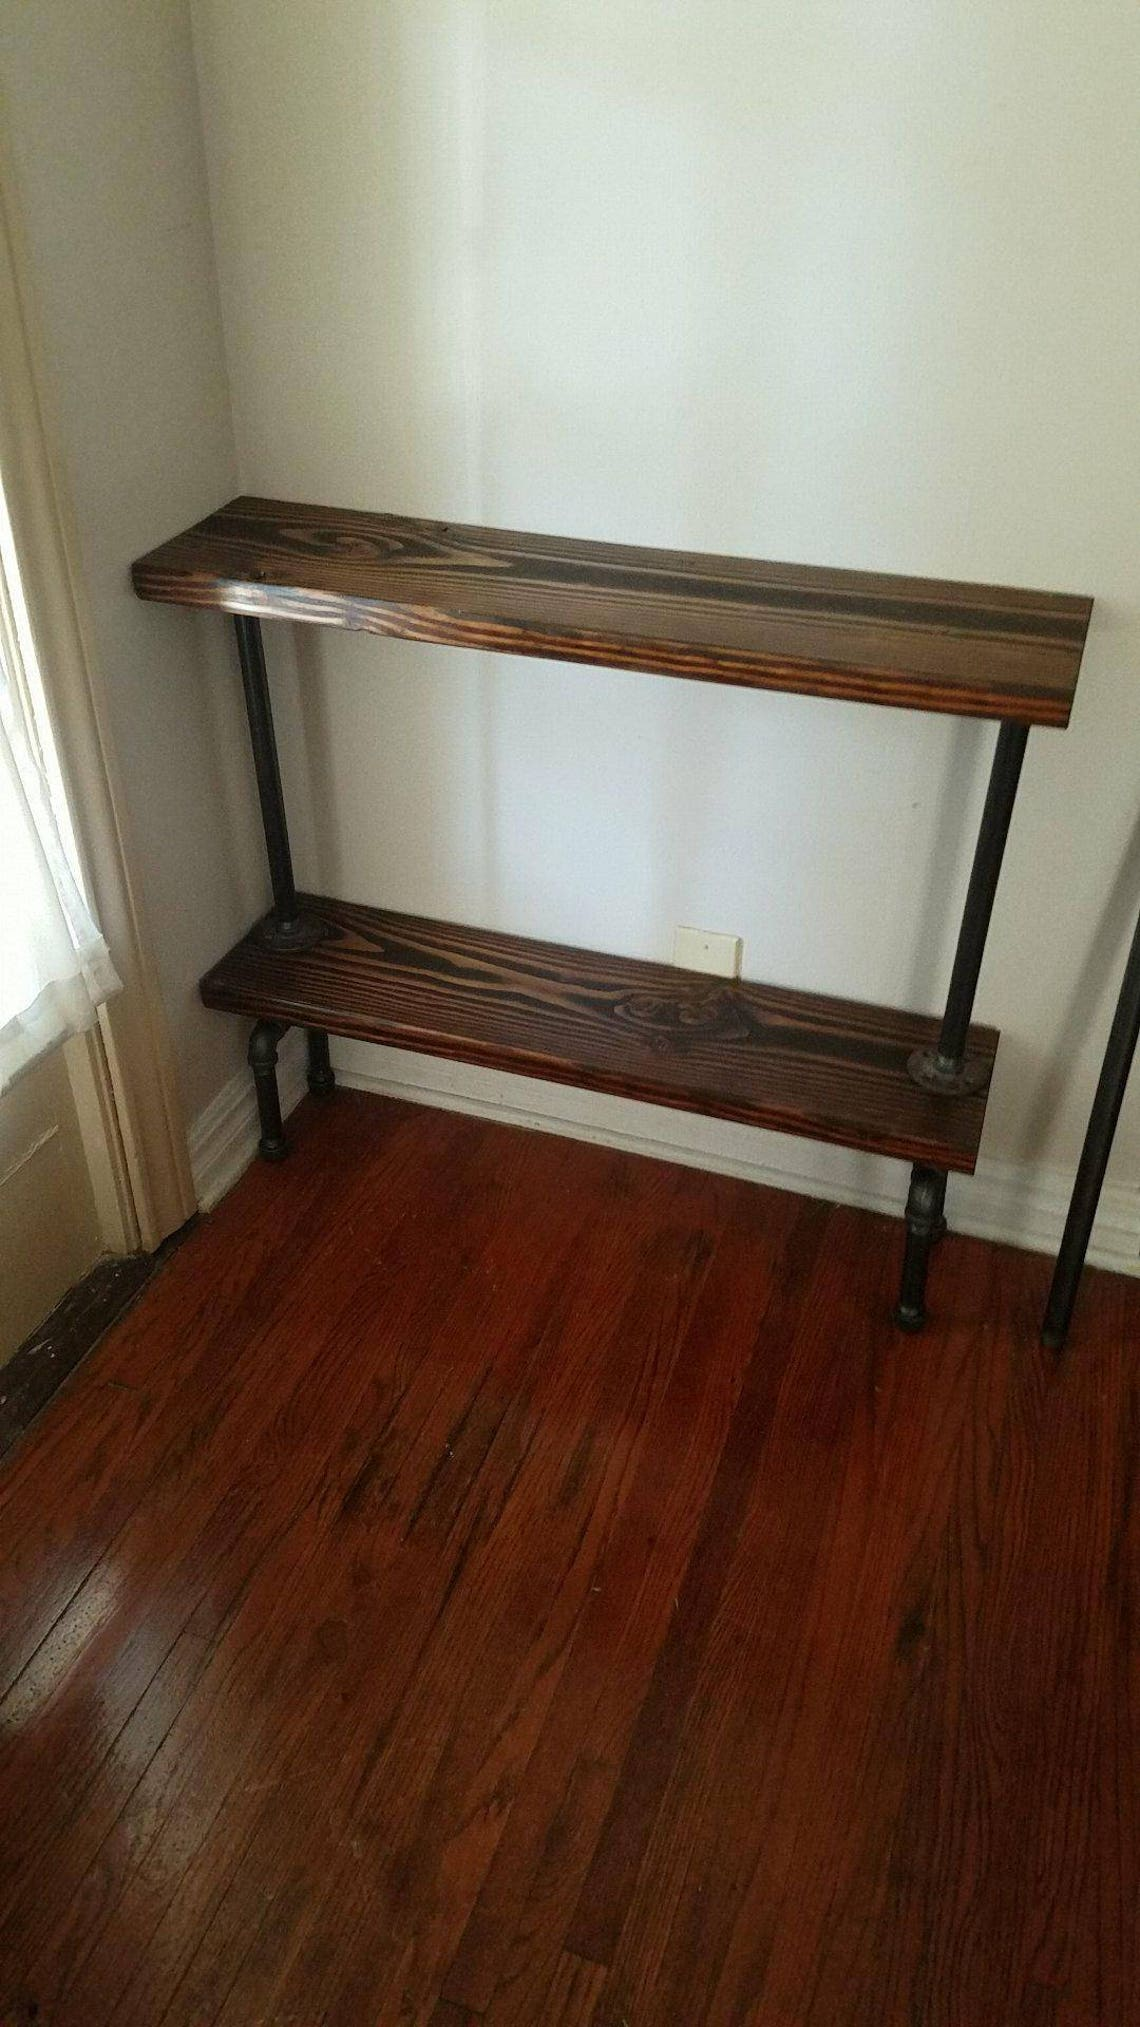 """9"""" depth Table, wood table, Entry way table, tall Industrial pipe table, pipe table, decorative entryway table, industrial pipe table"""